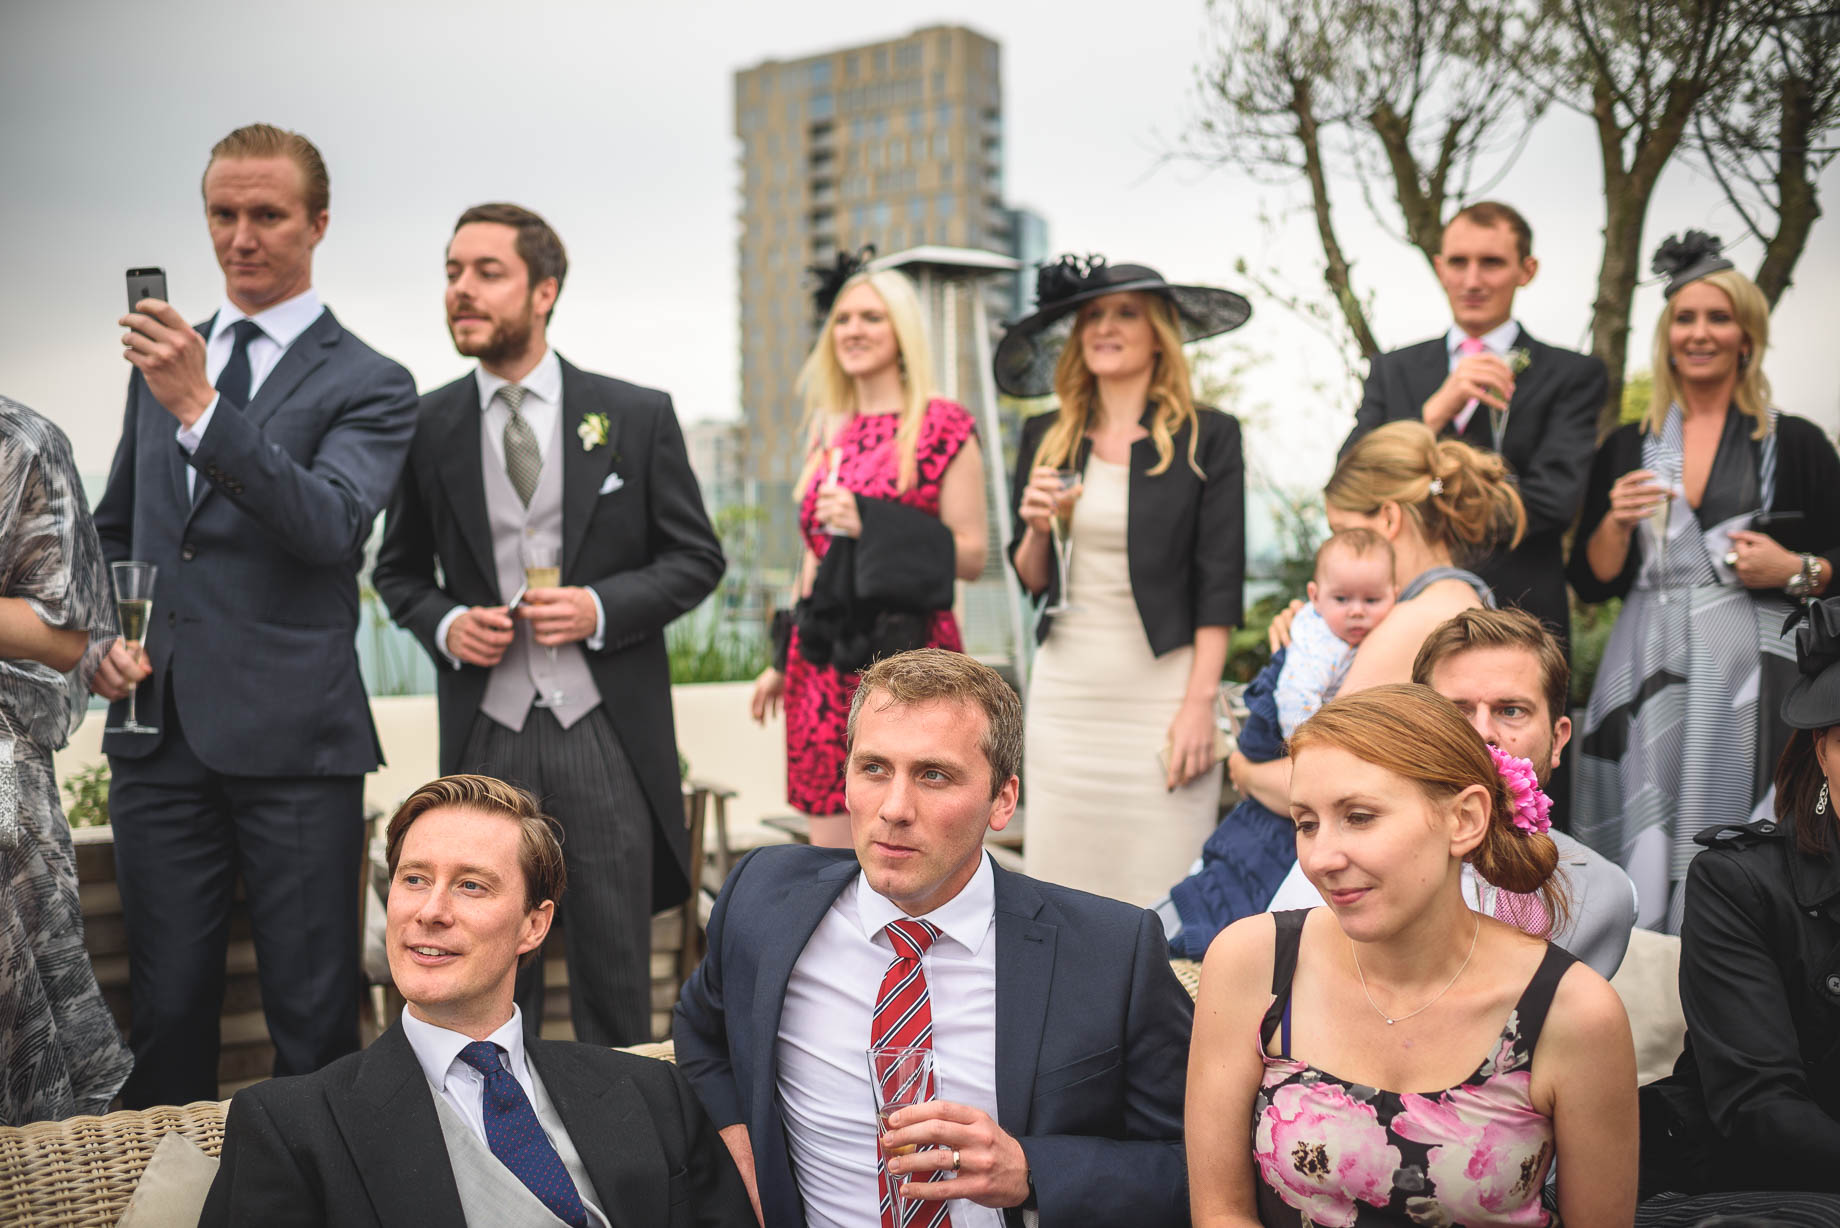 Shoreditch wedding photography - Guy Collier - Kat and Henry (167 of 200)